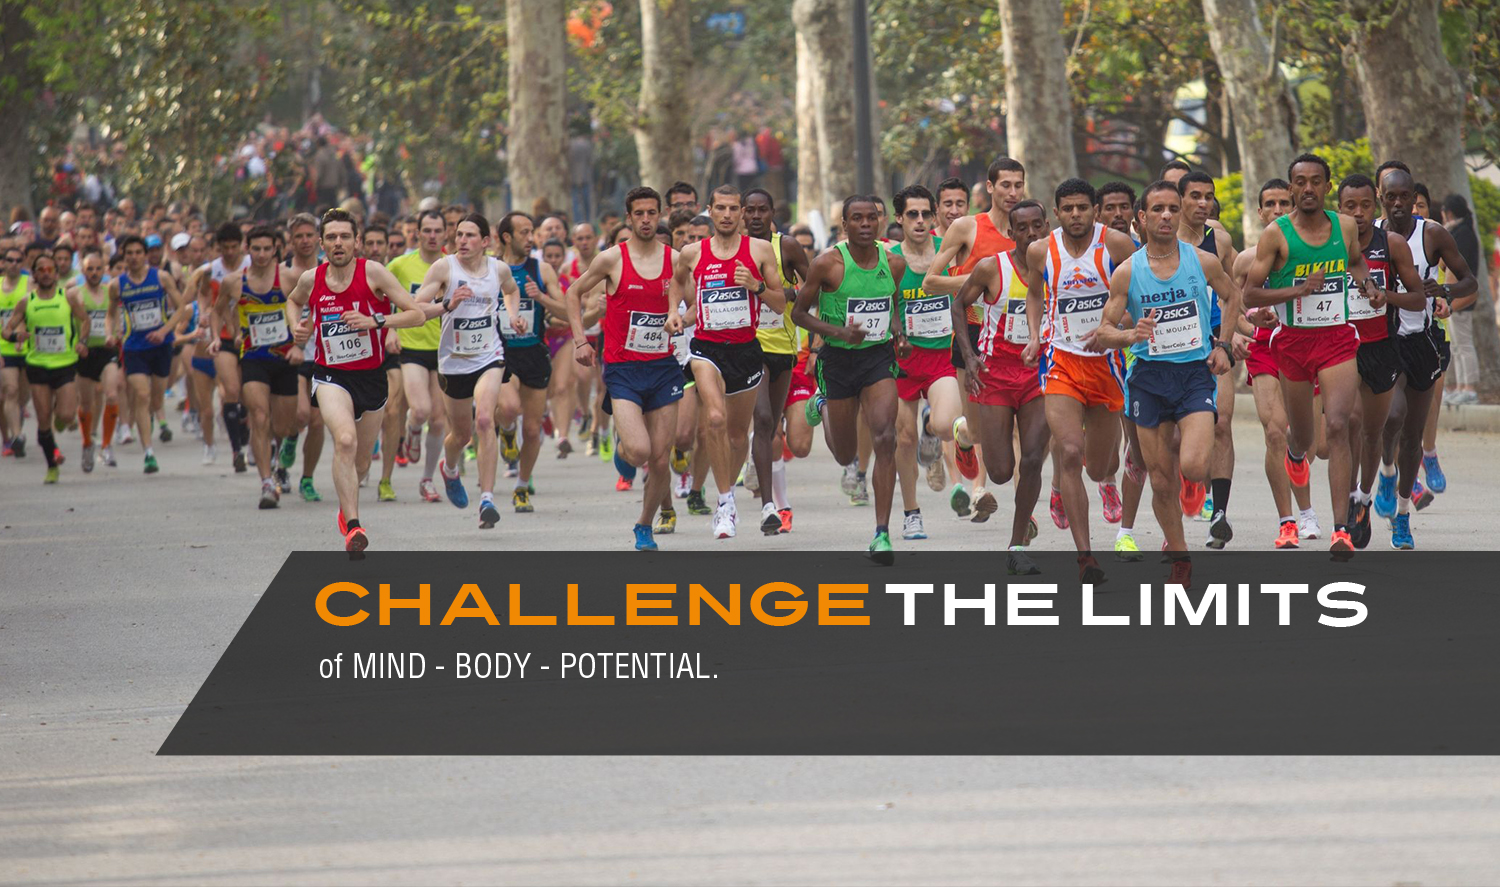 Challenge the Limits of Mind and Body Potential